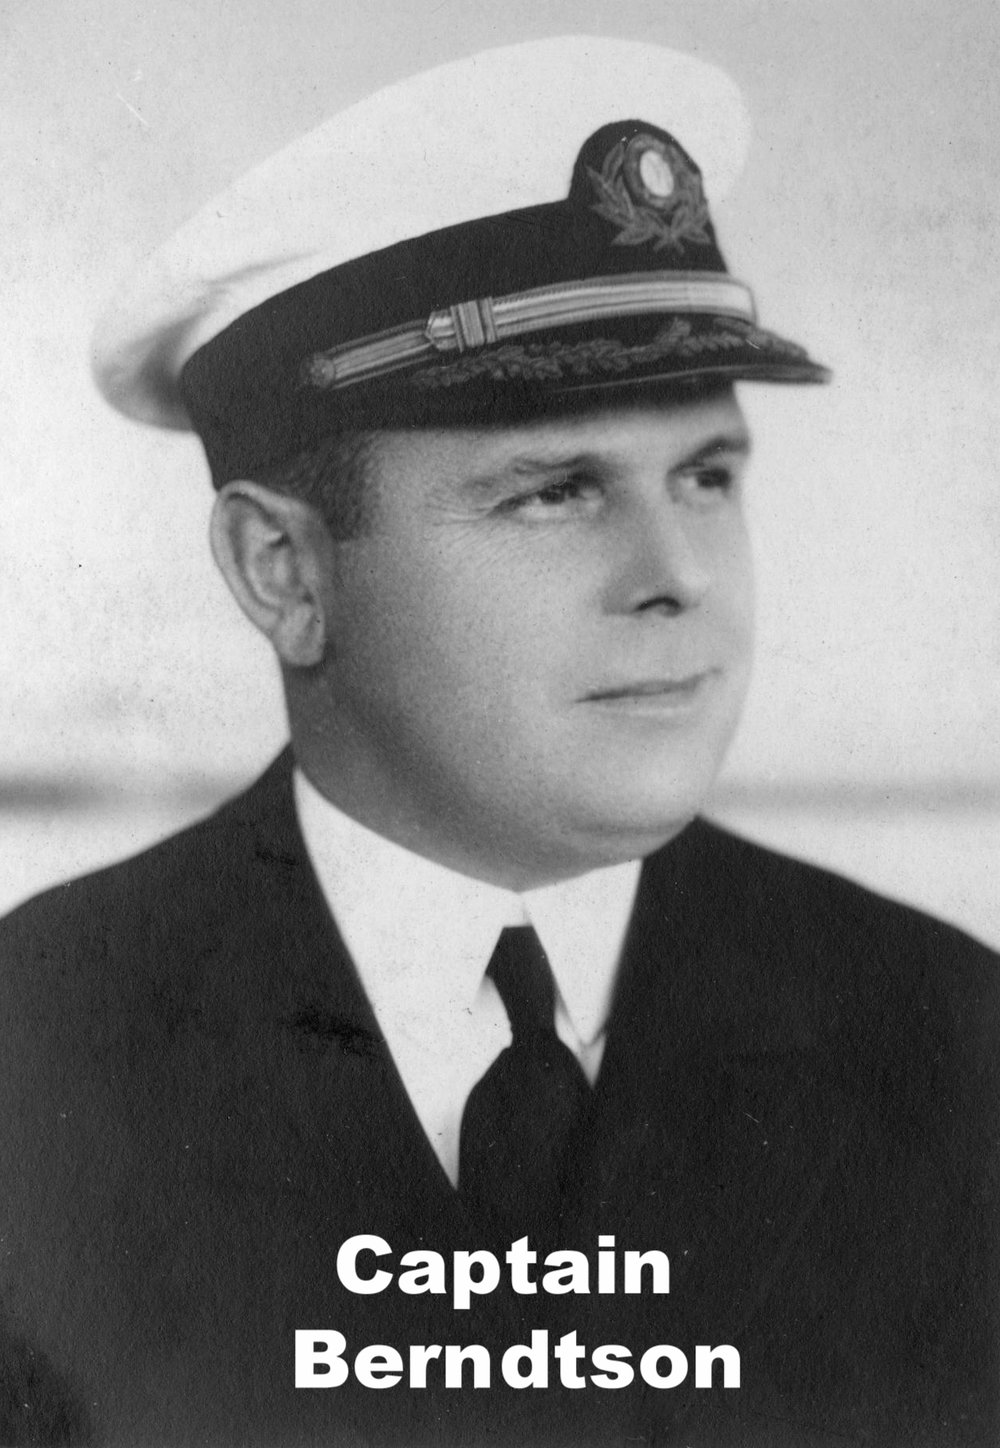 Captain Berndtson